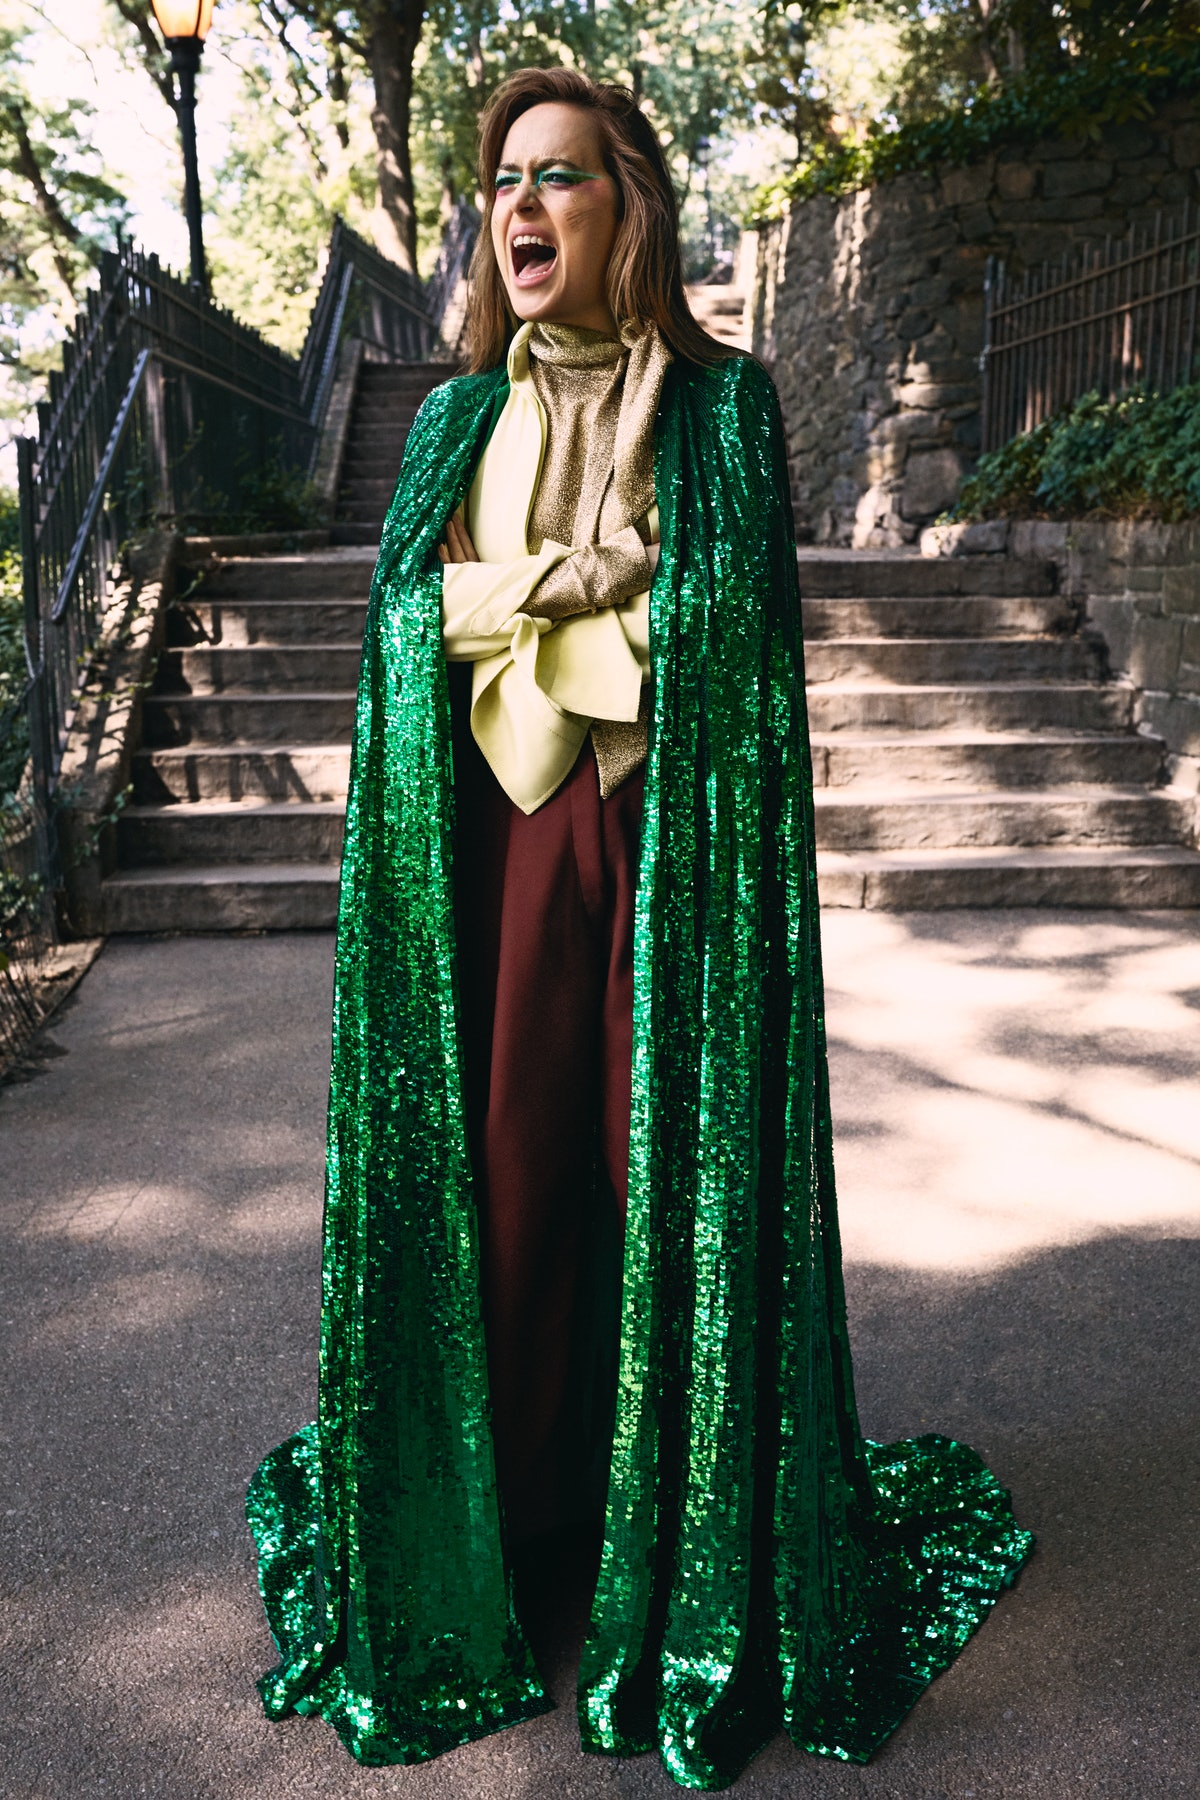 Valentino Haute Couture cape, shirt, blouse, and pants.